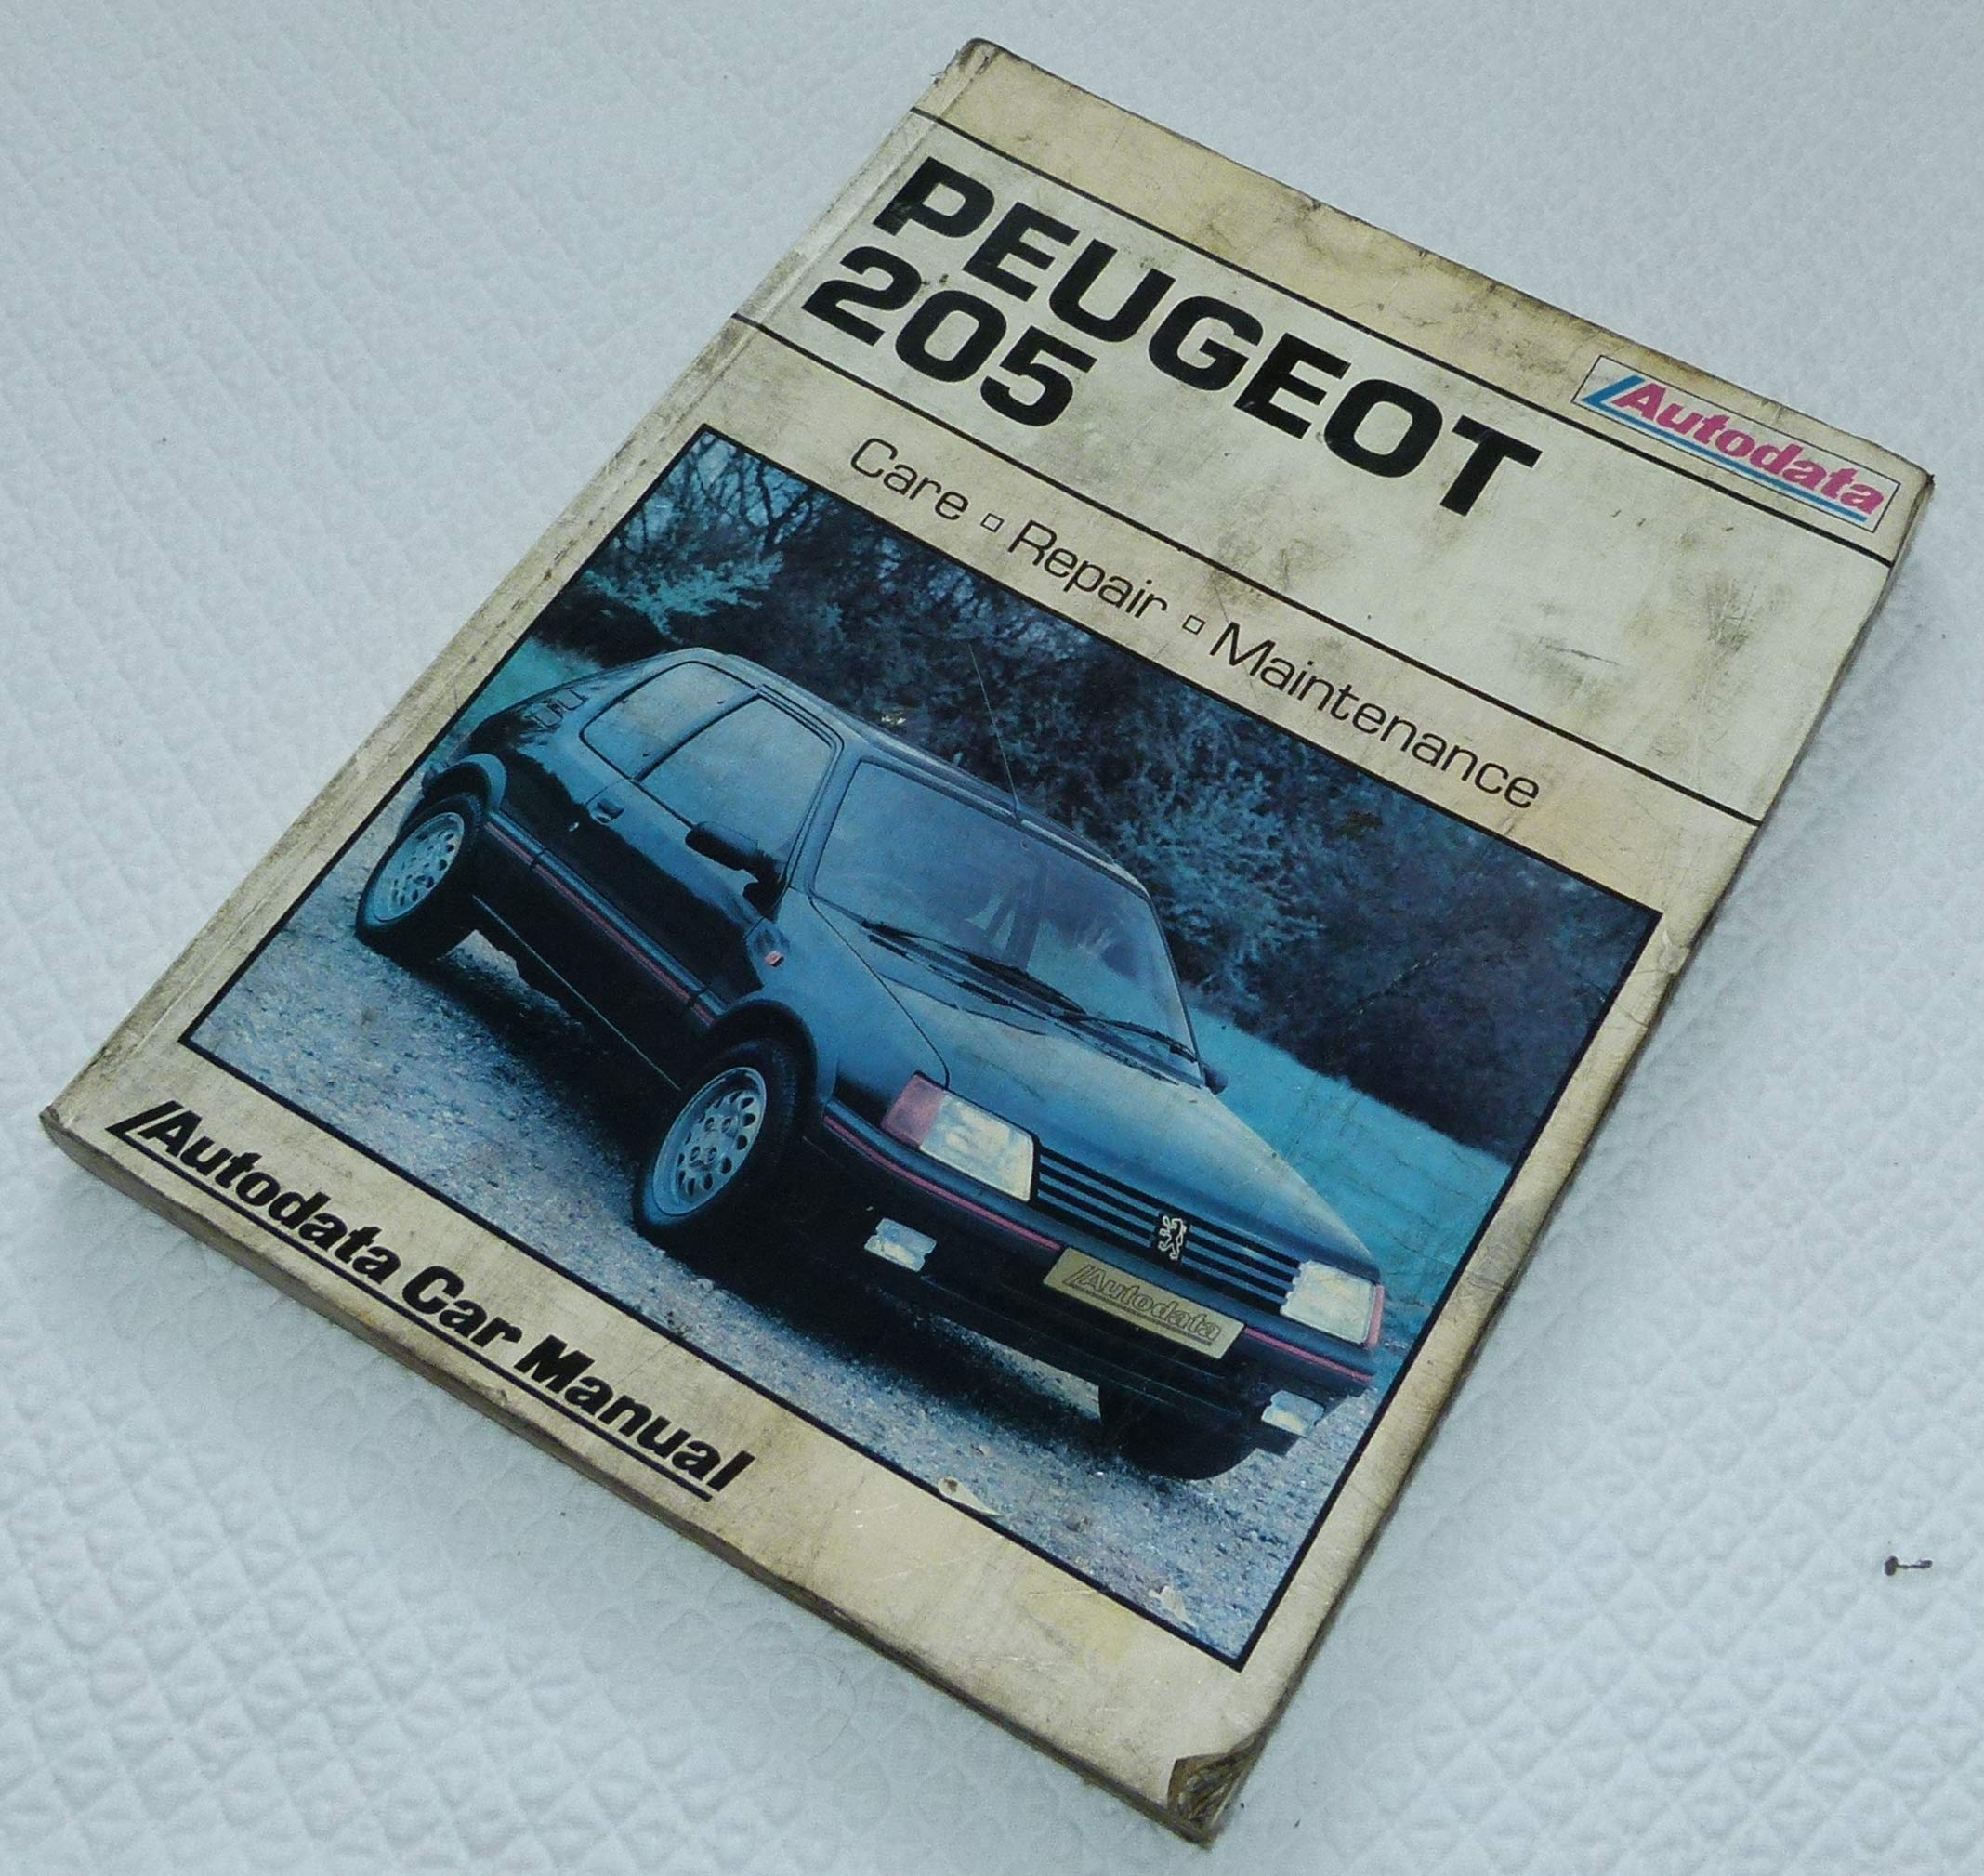 Peugeot 205 1983-90 (Autodata car manual): Amazon.es: Libros en idiomas extranjeros